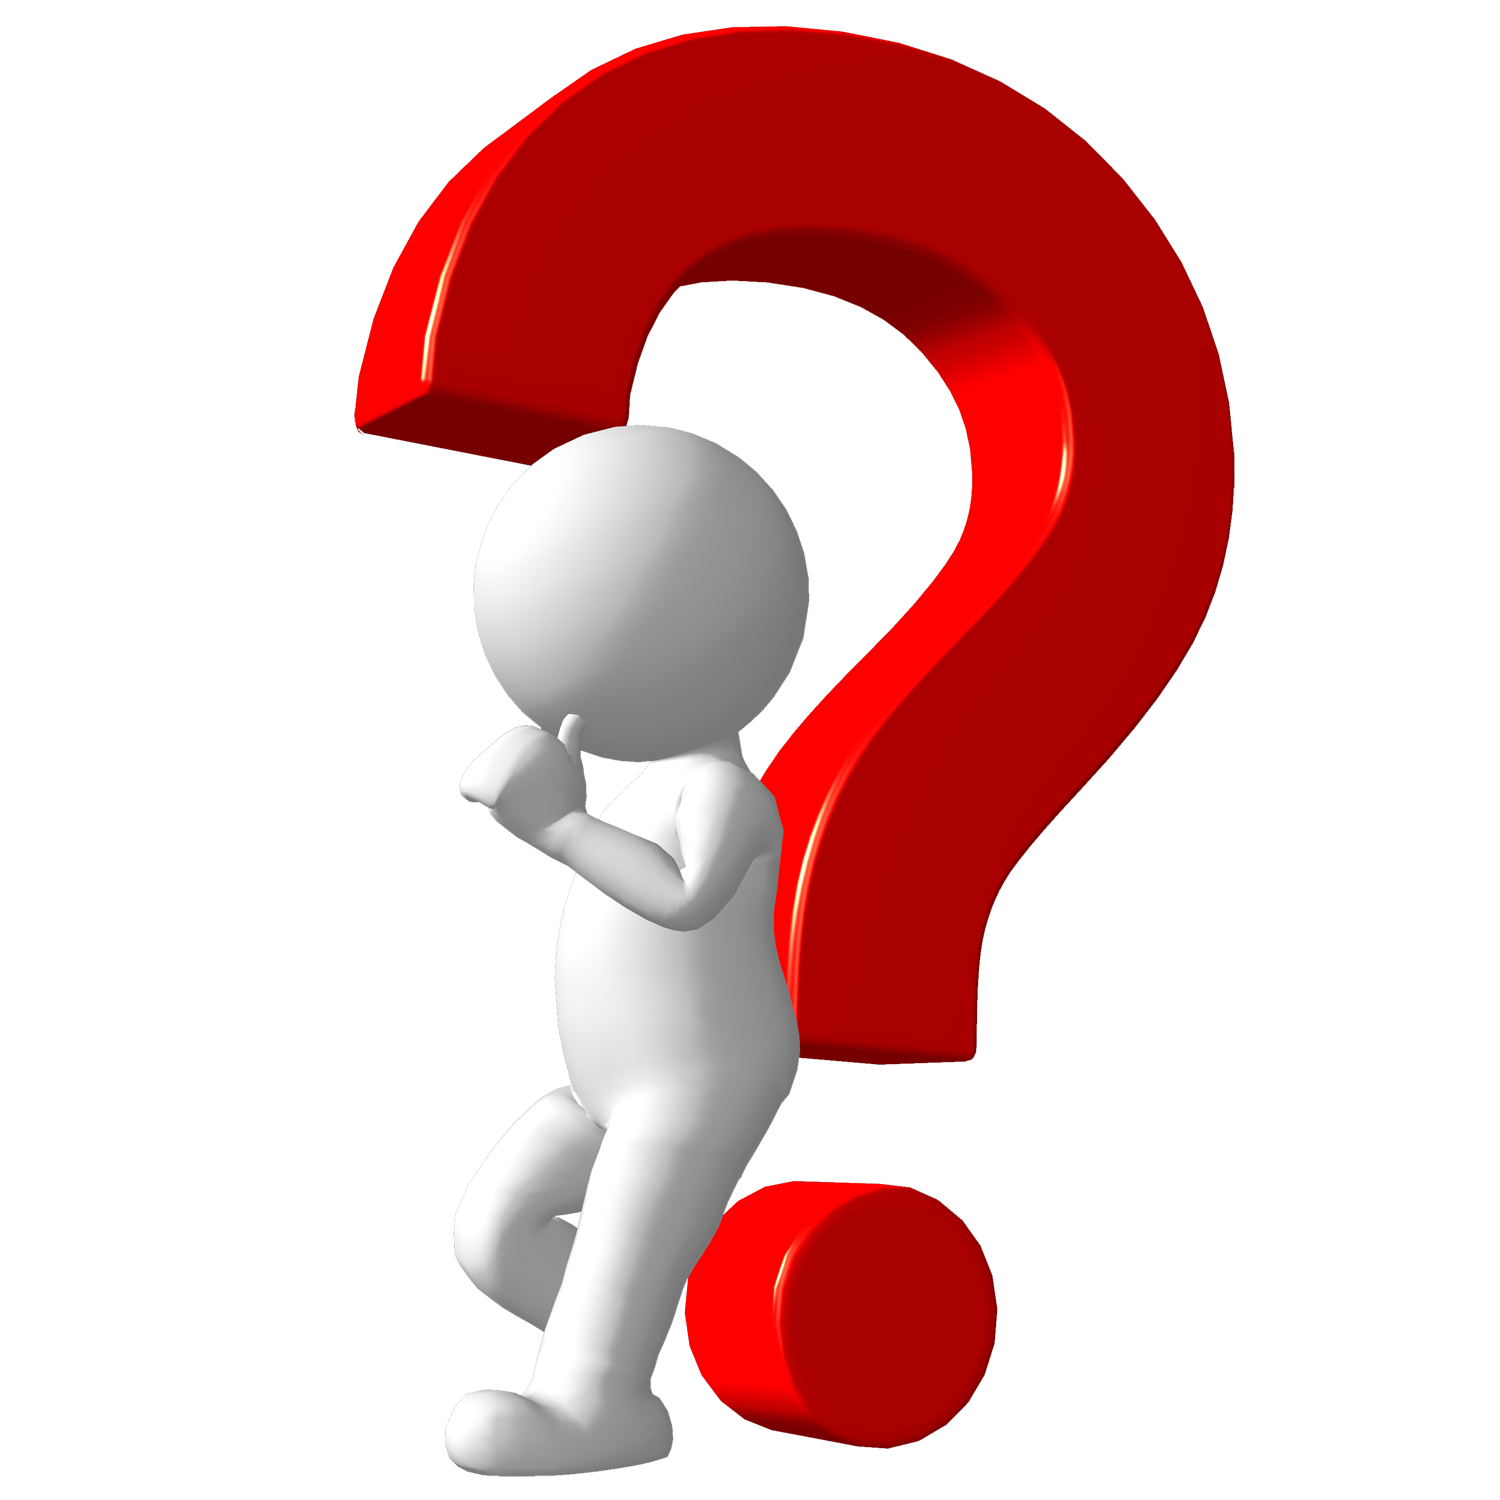 question mark clip art png - photo #45